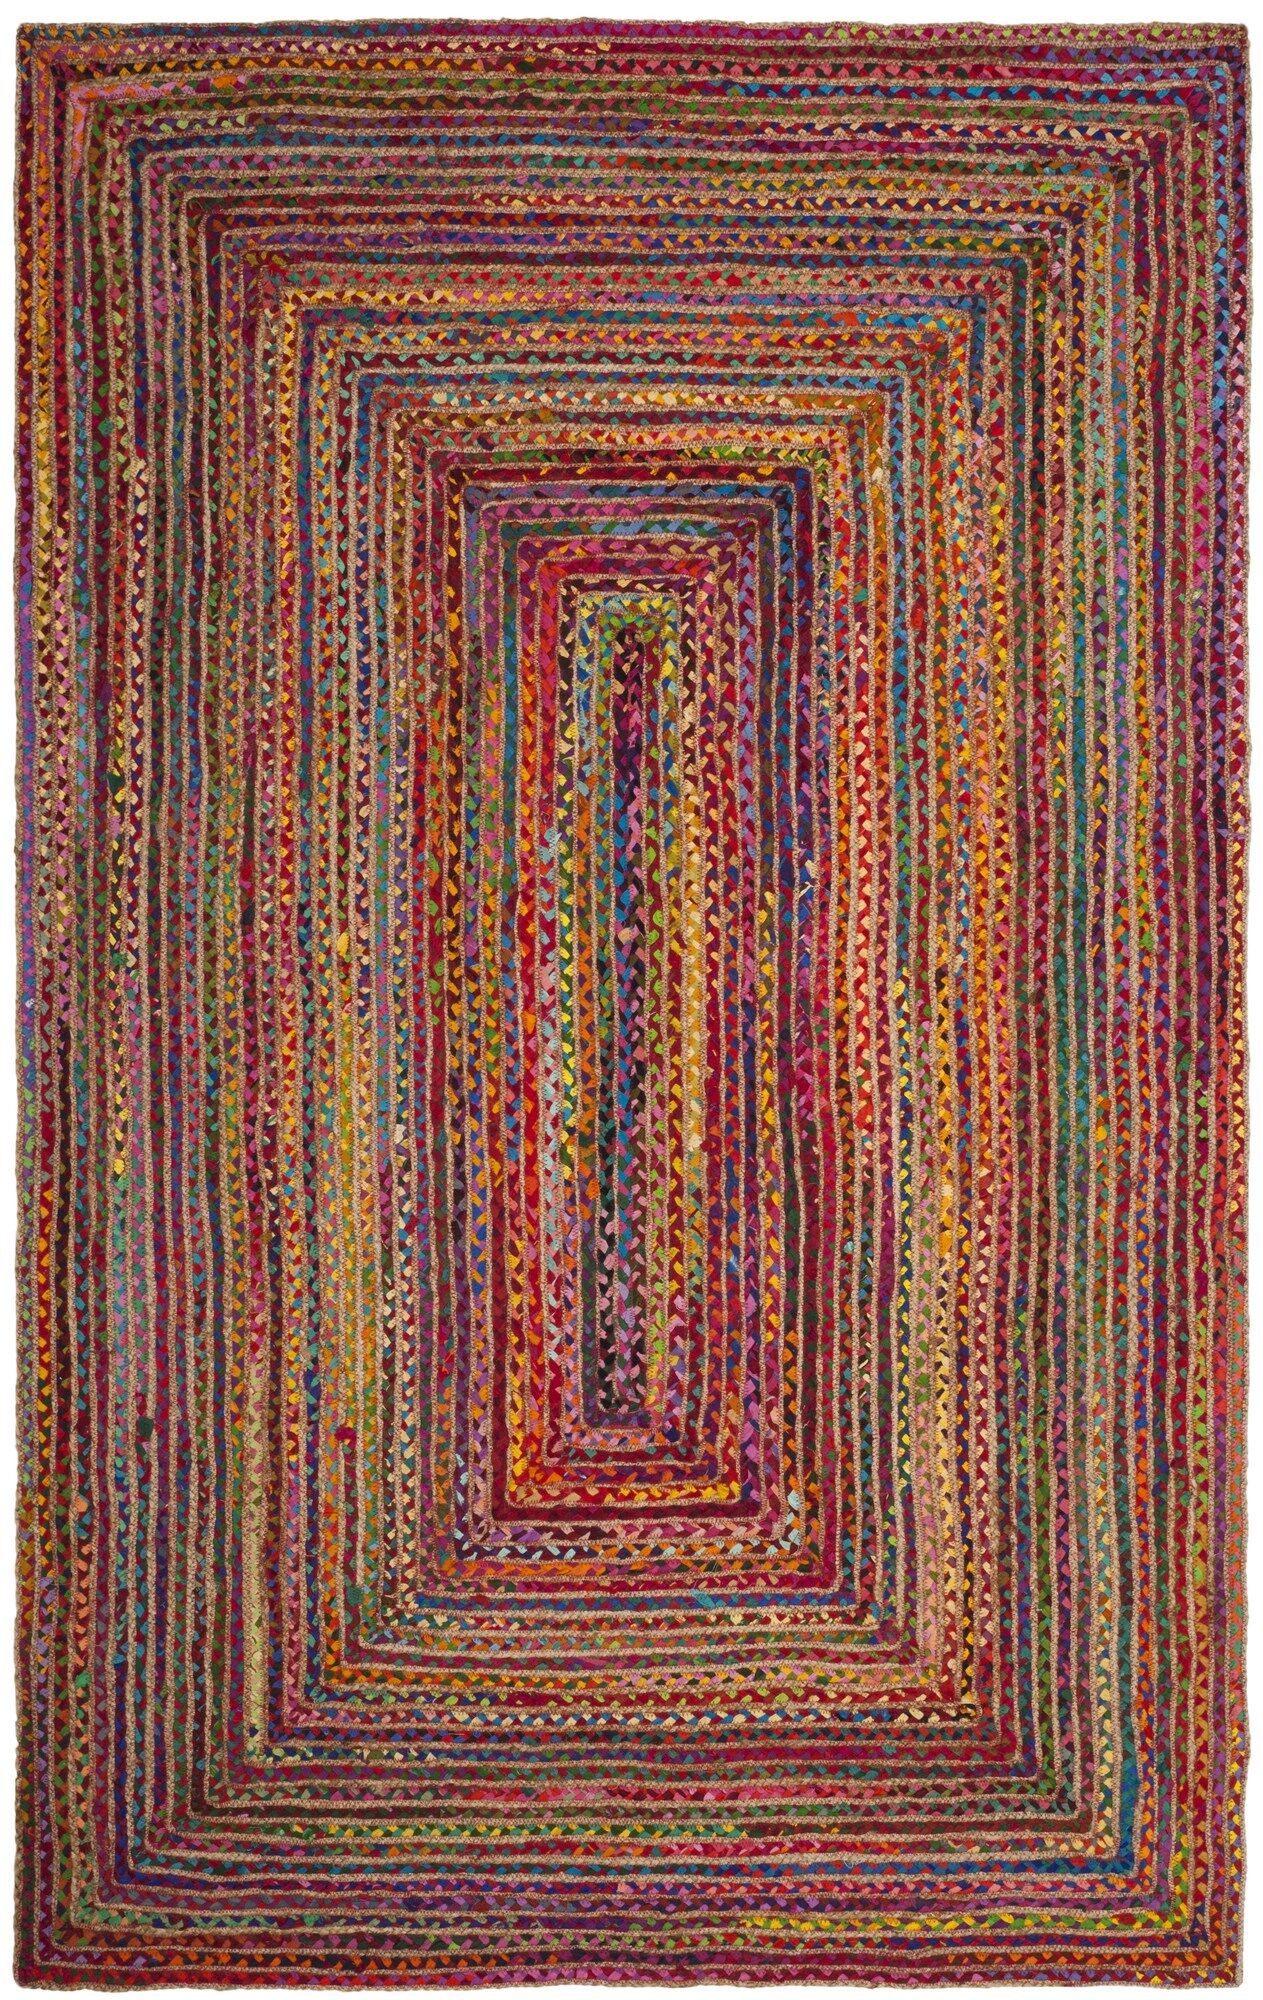 Bowen Hand-Woven Red/Multi Area Rug Rug Size: Rectangle 6' x 9'